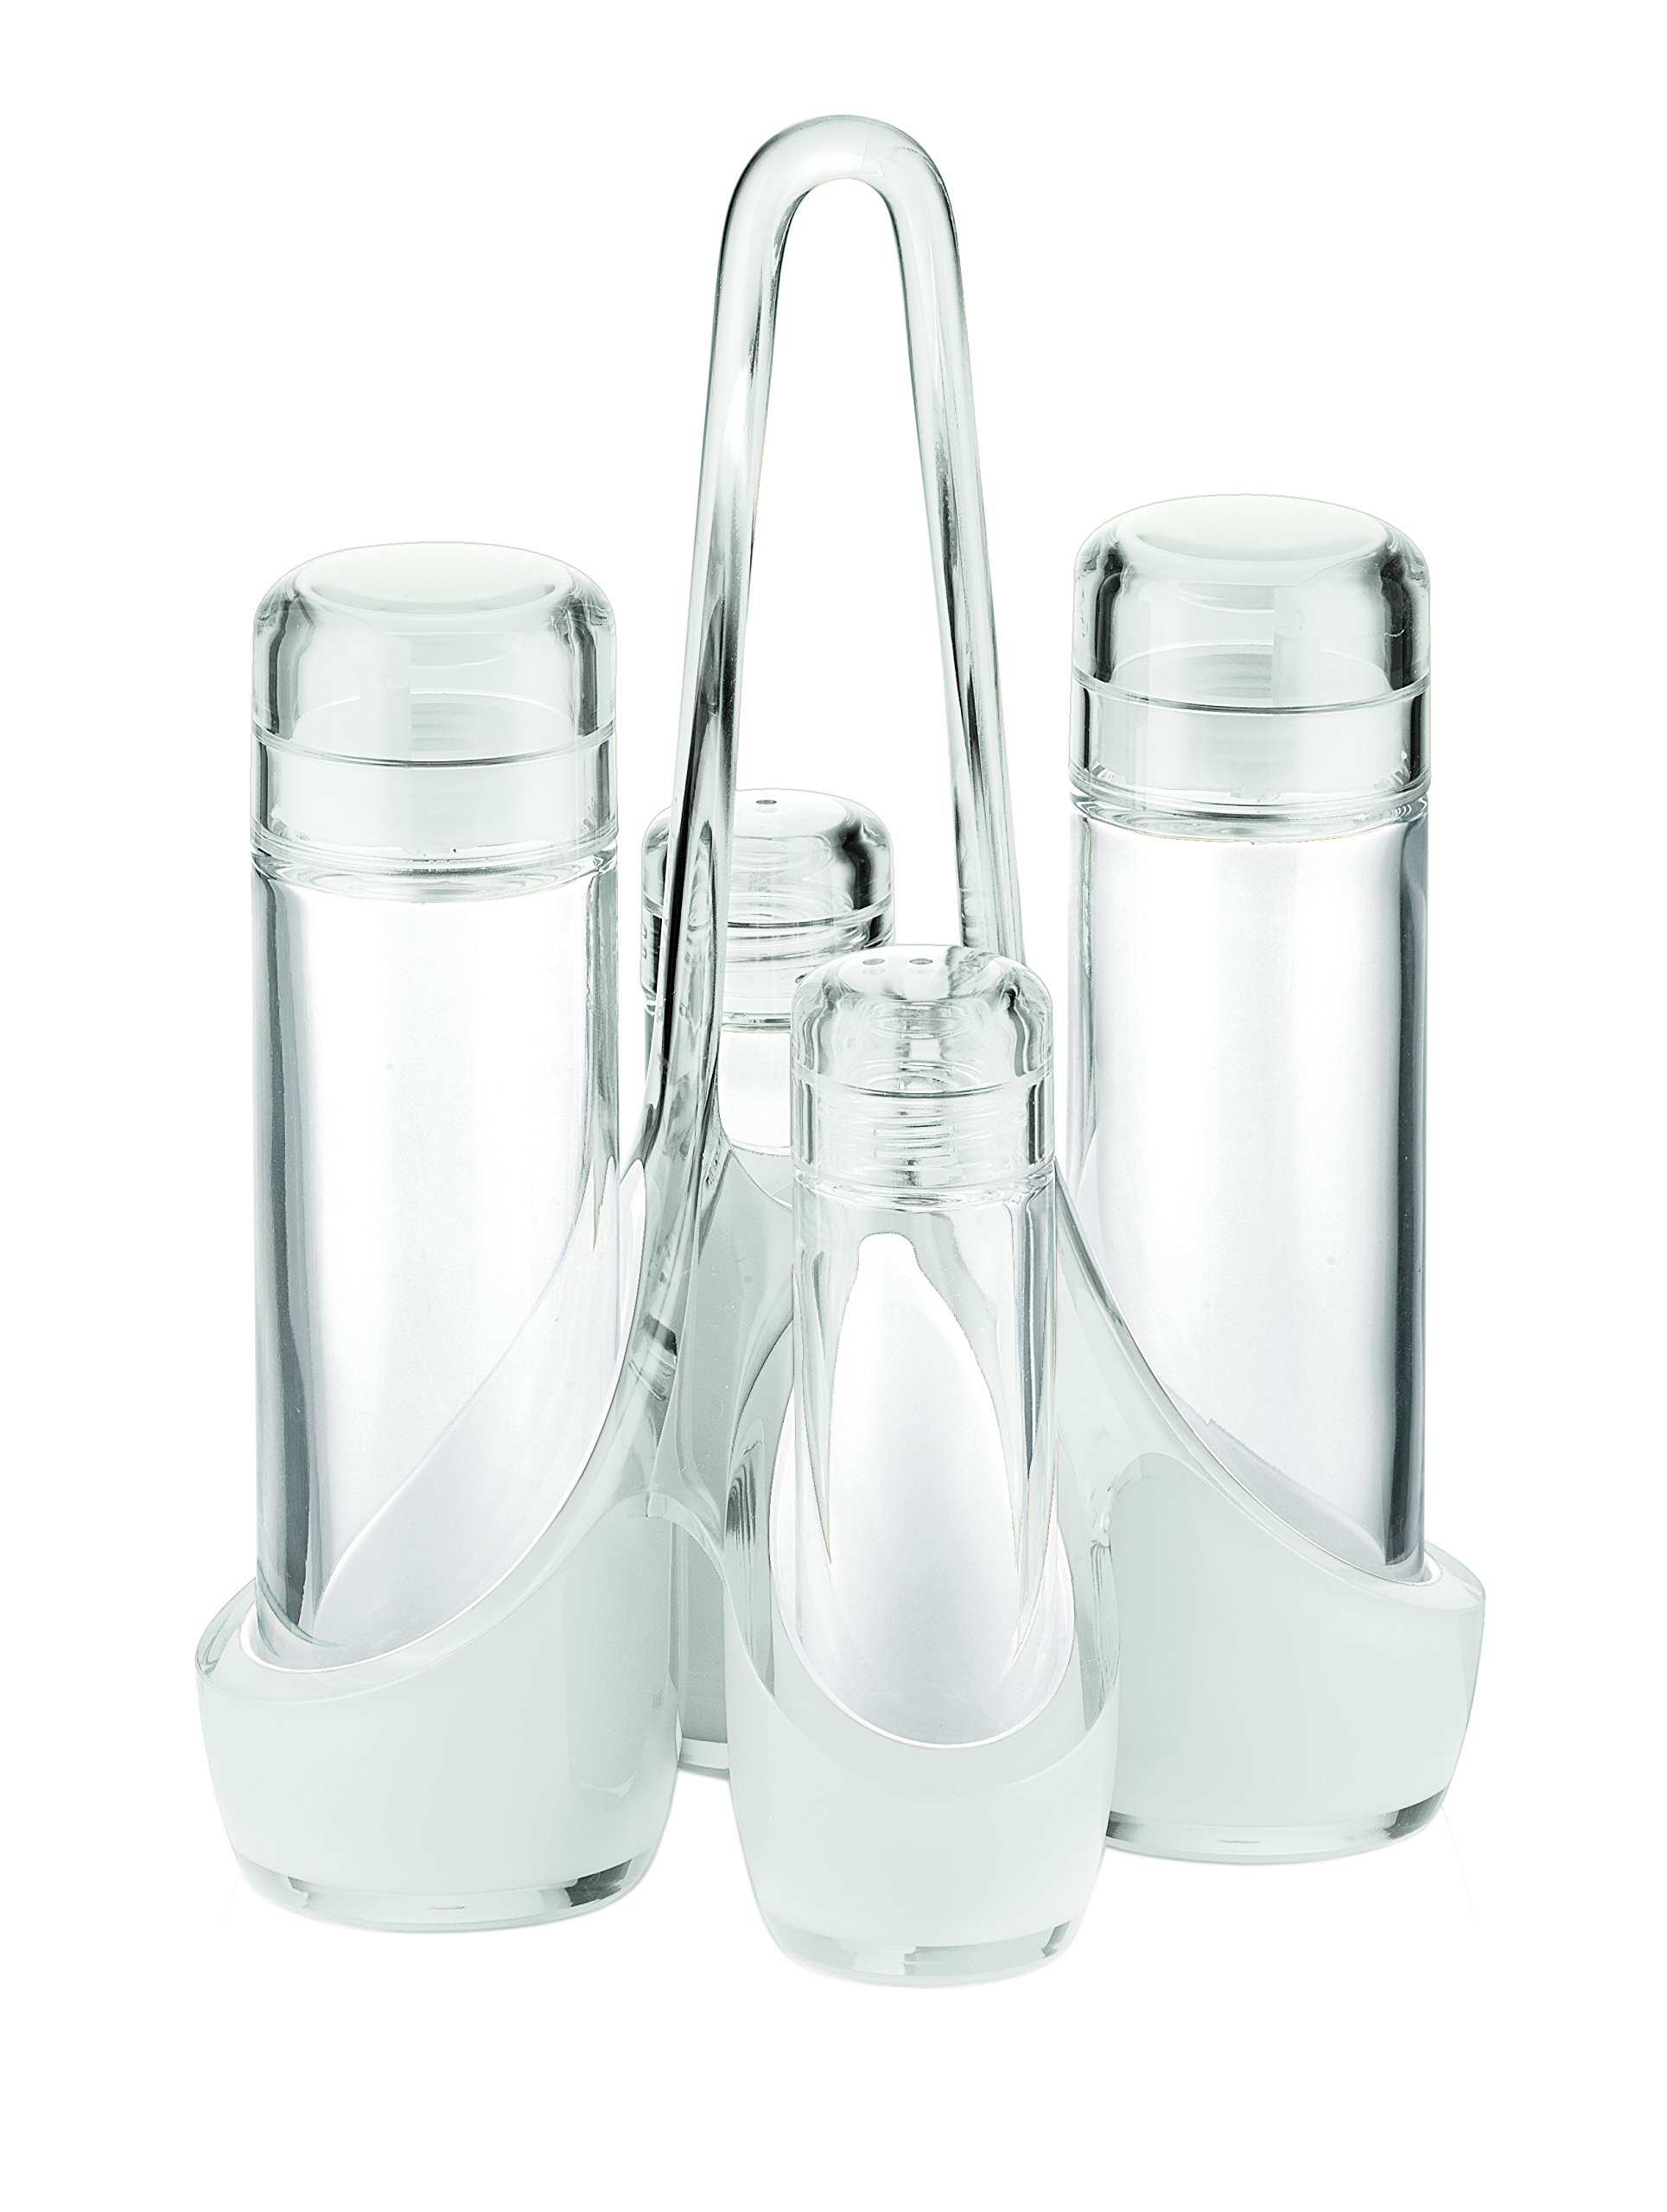 Guzzini Mirage 24880000 Oil / Vinegar Set